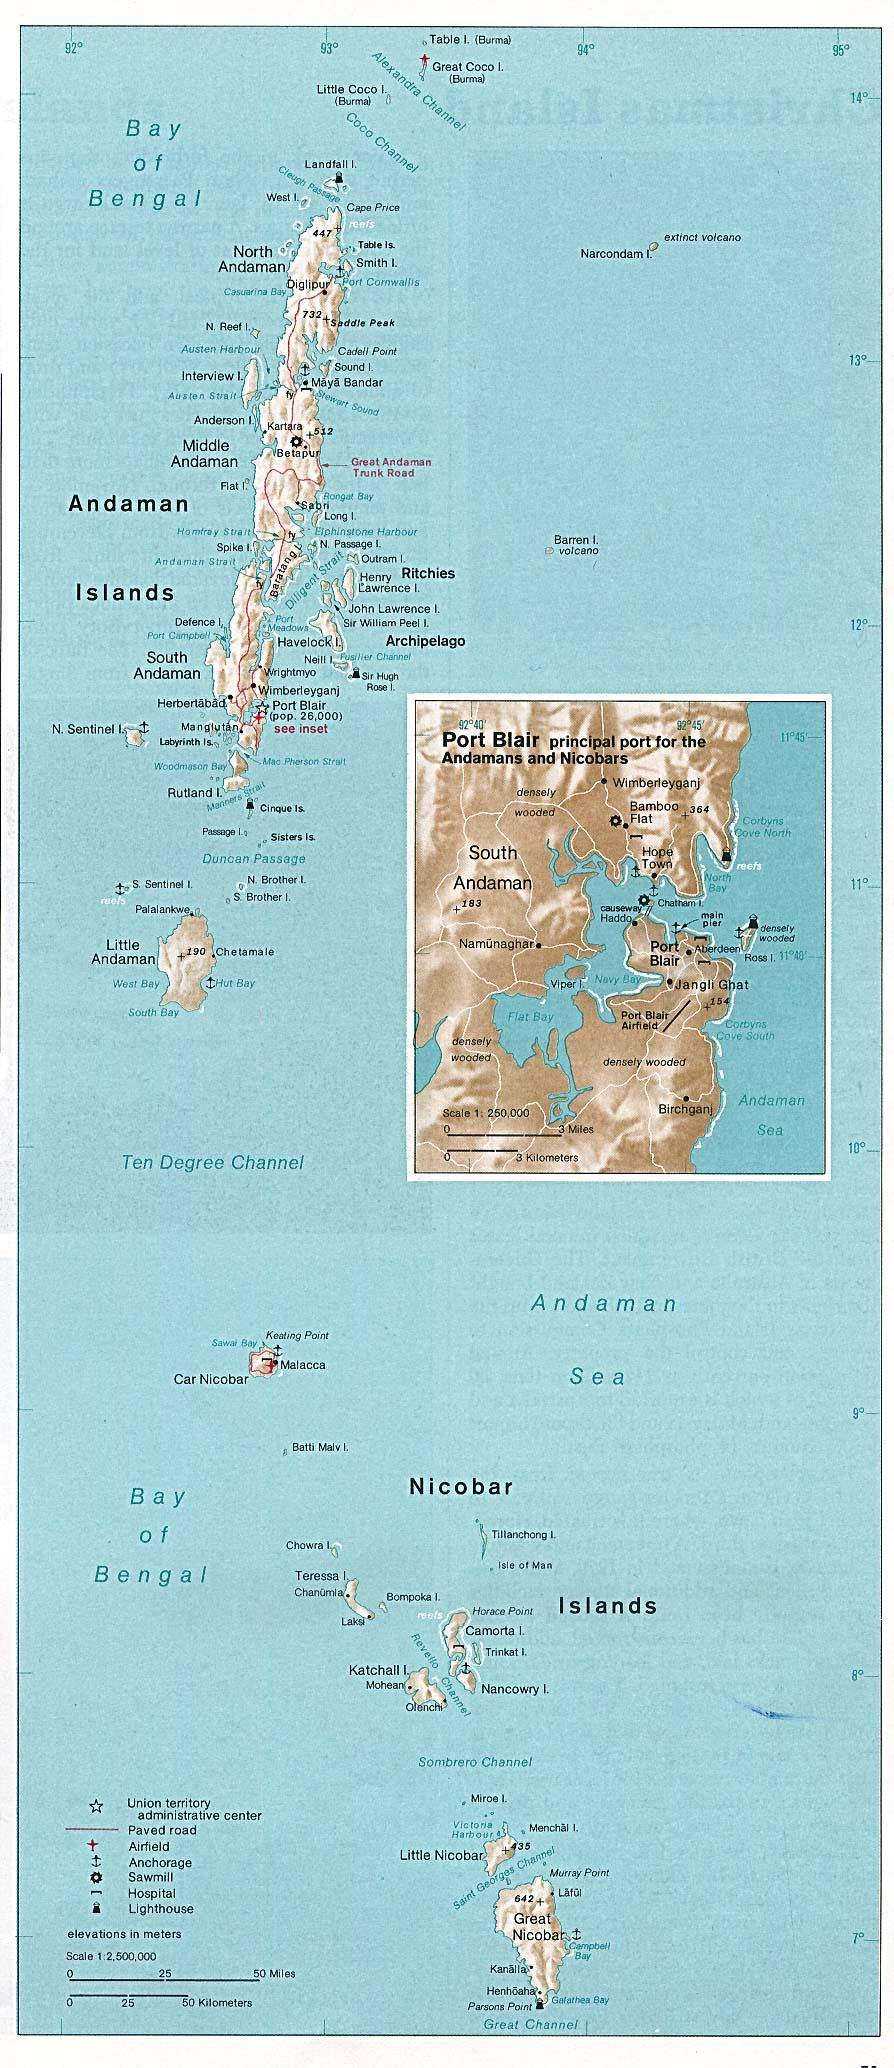 Andaman and Nicobar Islands (Union Territory of India) 1976